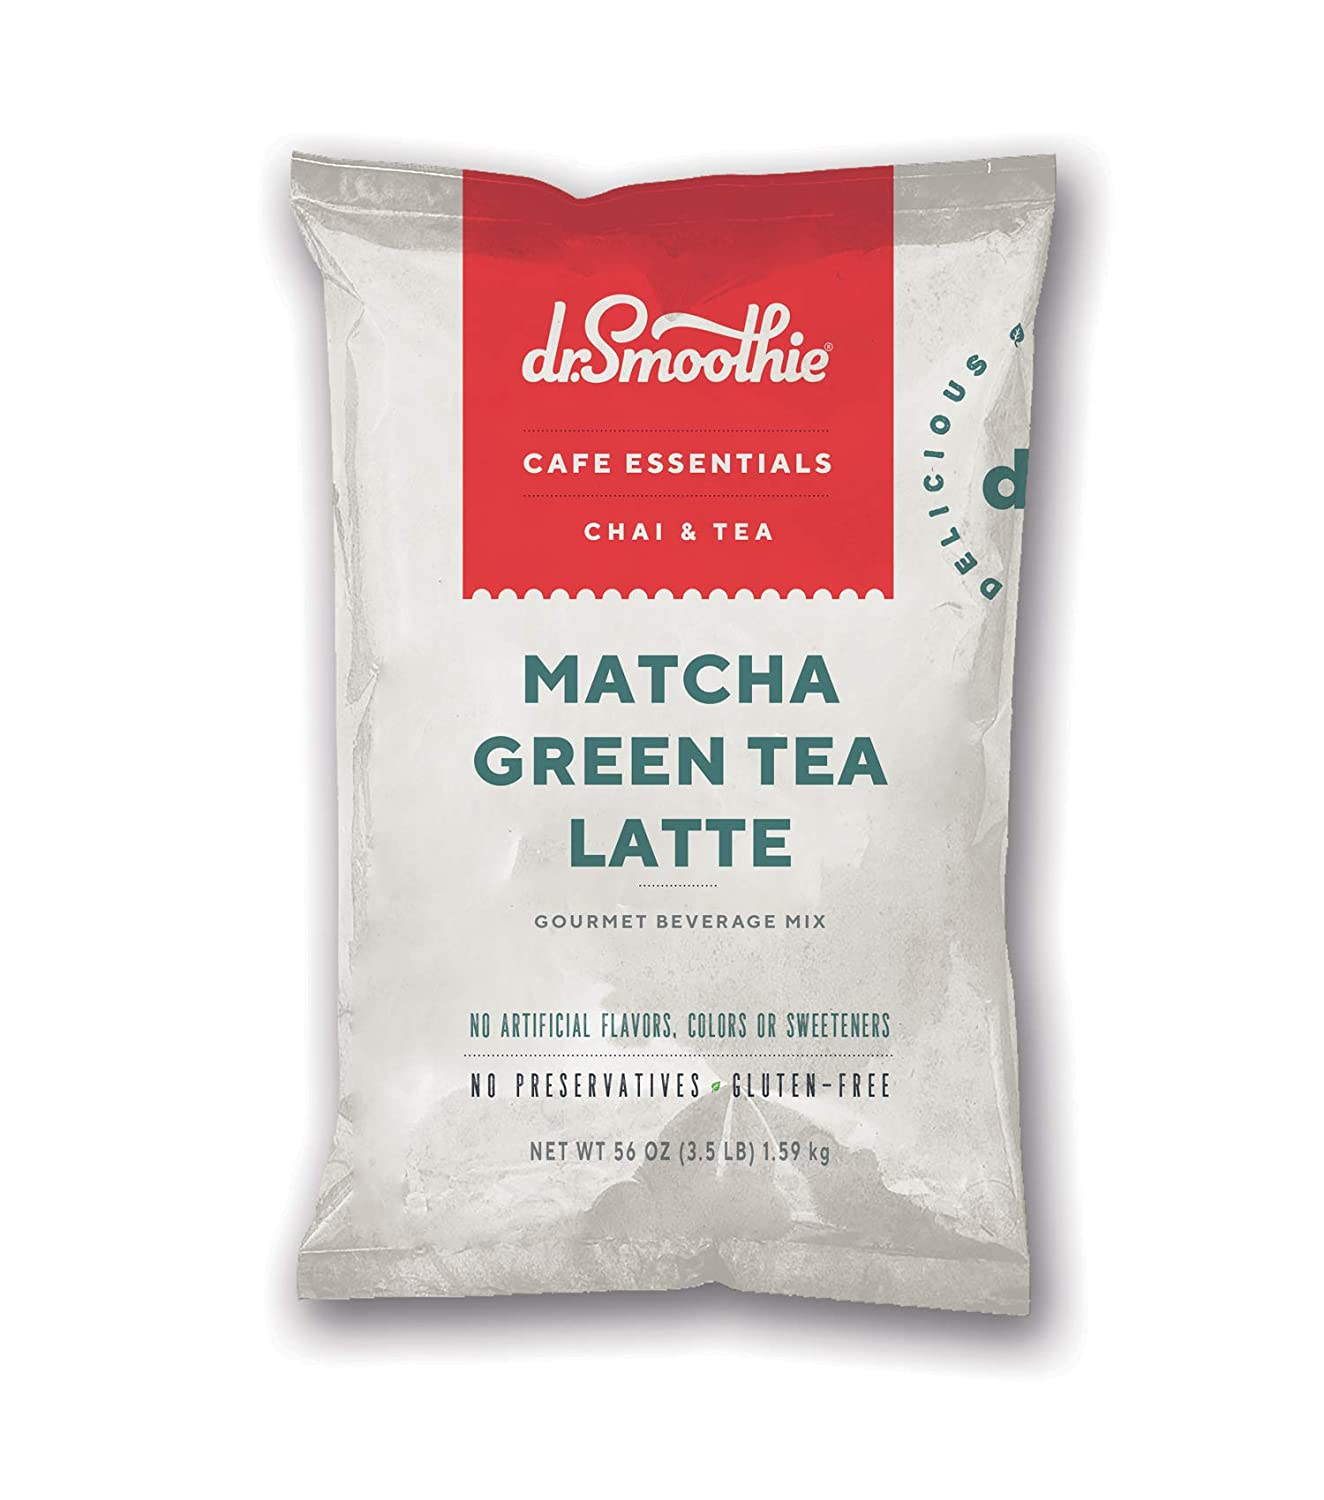 Cafe Essentials Clearance SALE Limited time Matcha Challenge the lowest price Green Latte Tea lb 3.5